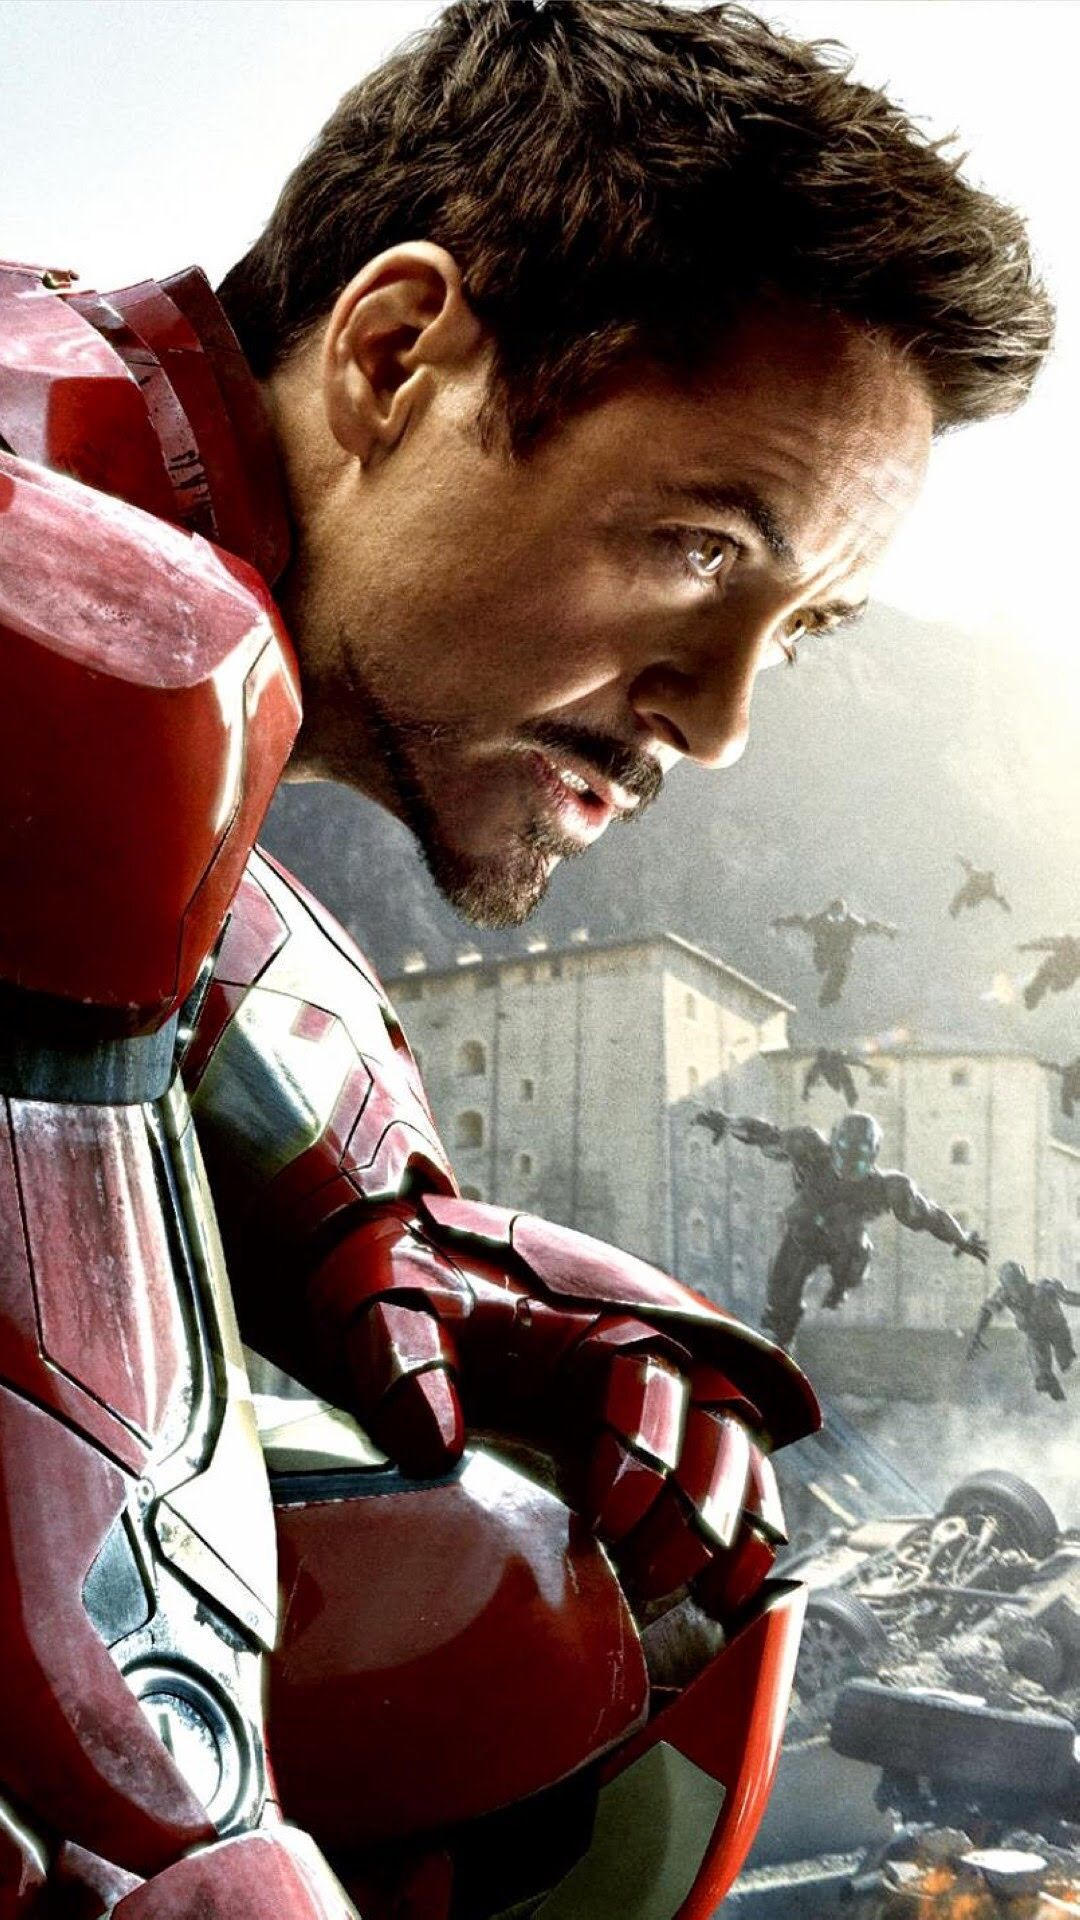 Pin On Wallpapers Mobile Iron man age of ultron wallpaper